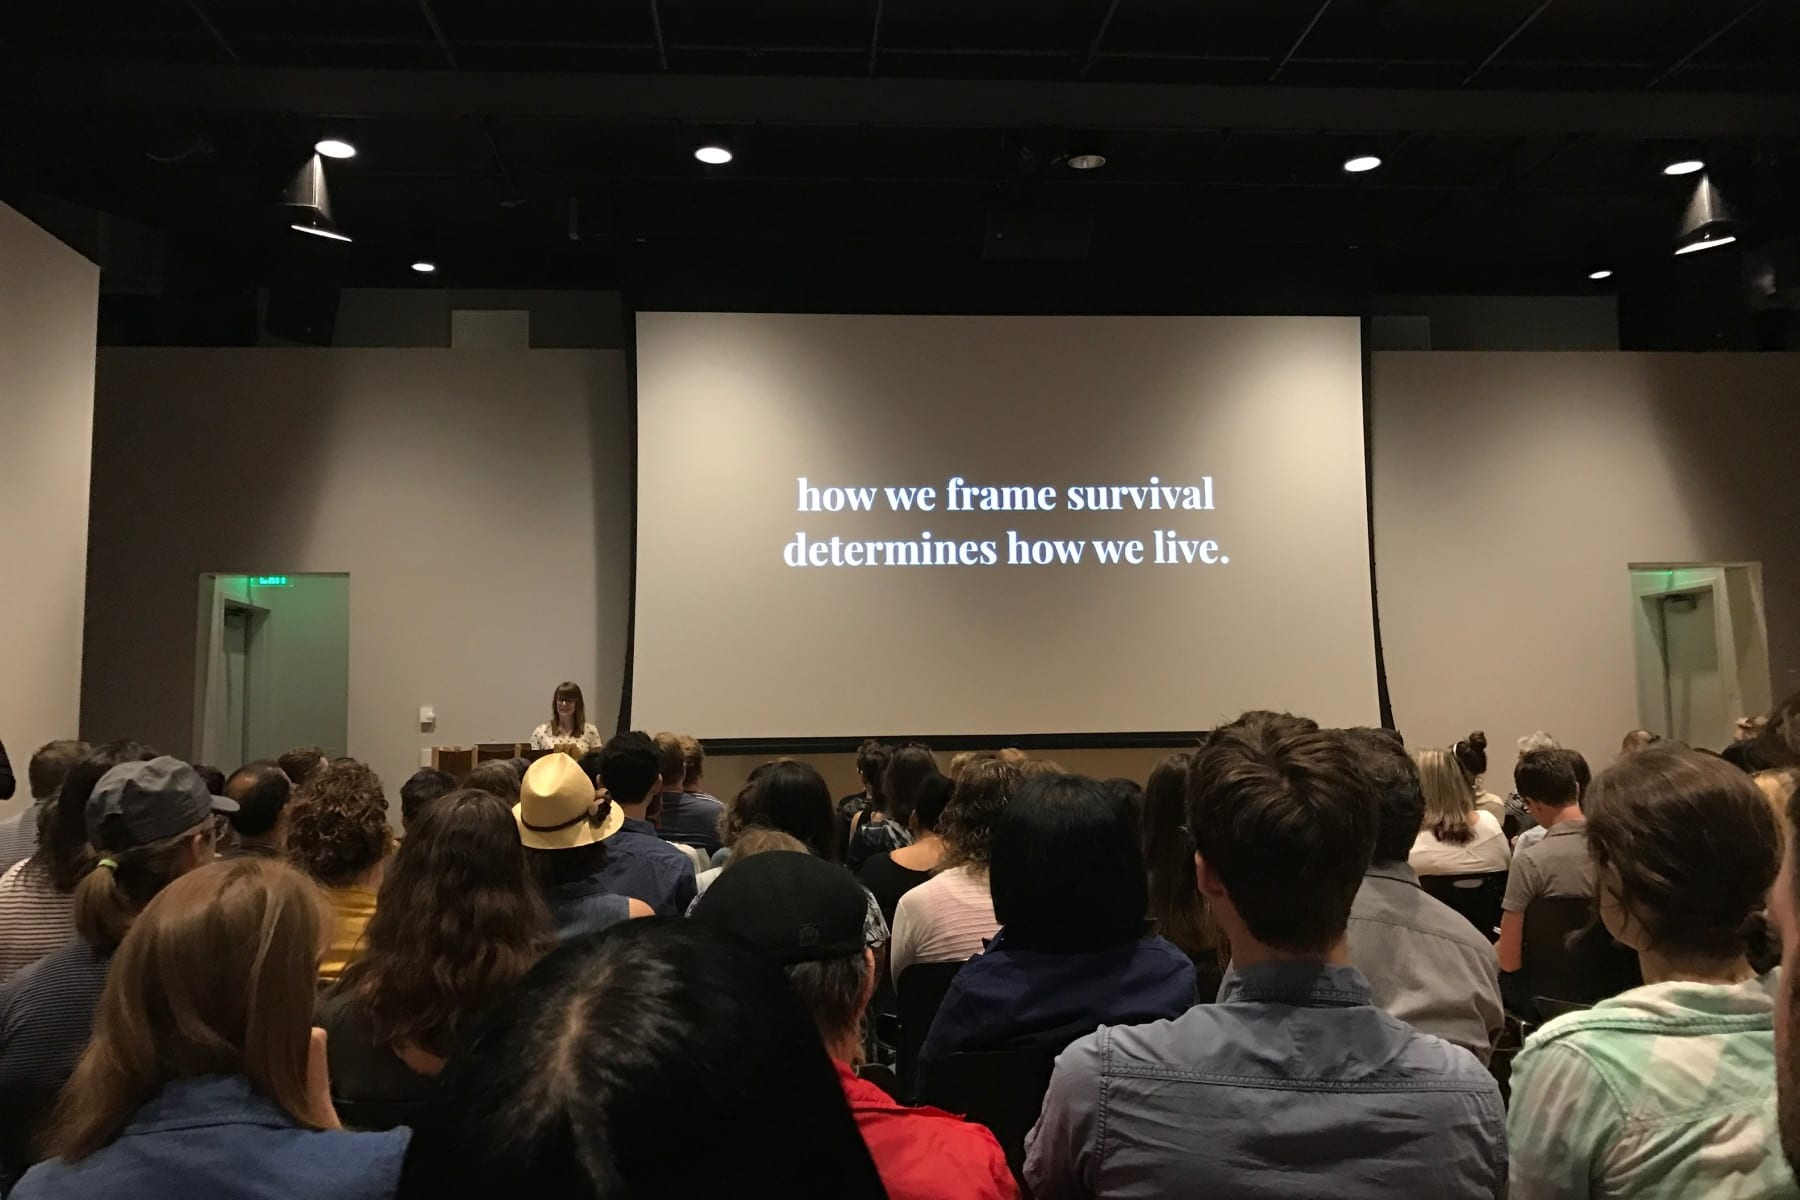 Traci Sym speaking in front of an audience at Creative Mornings PDX - How we frame survival determines how we live